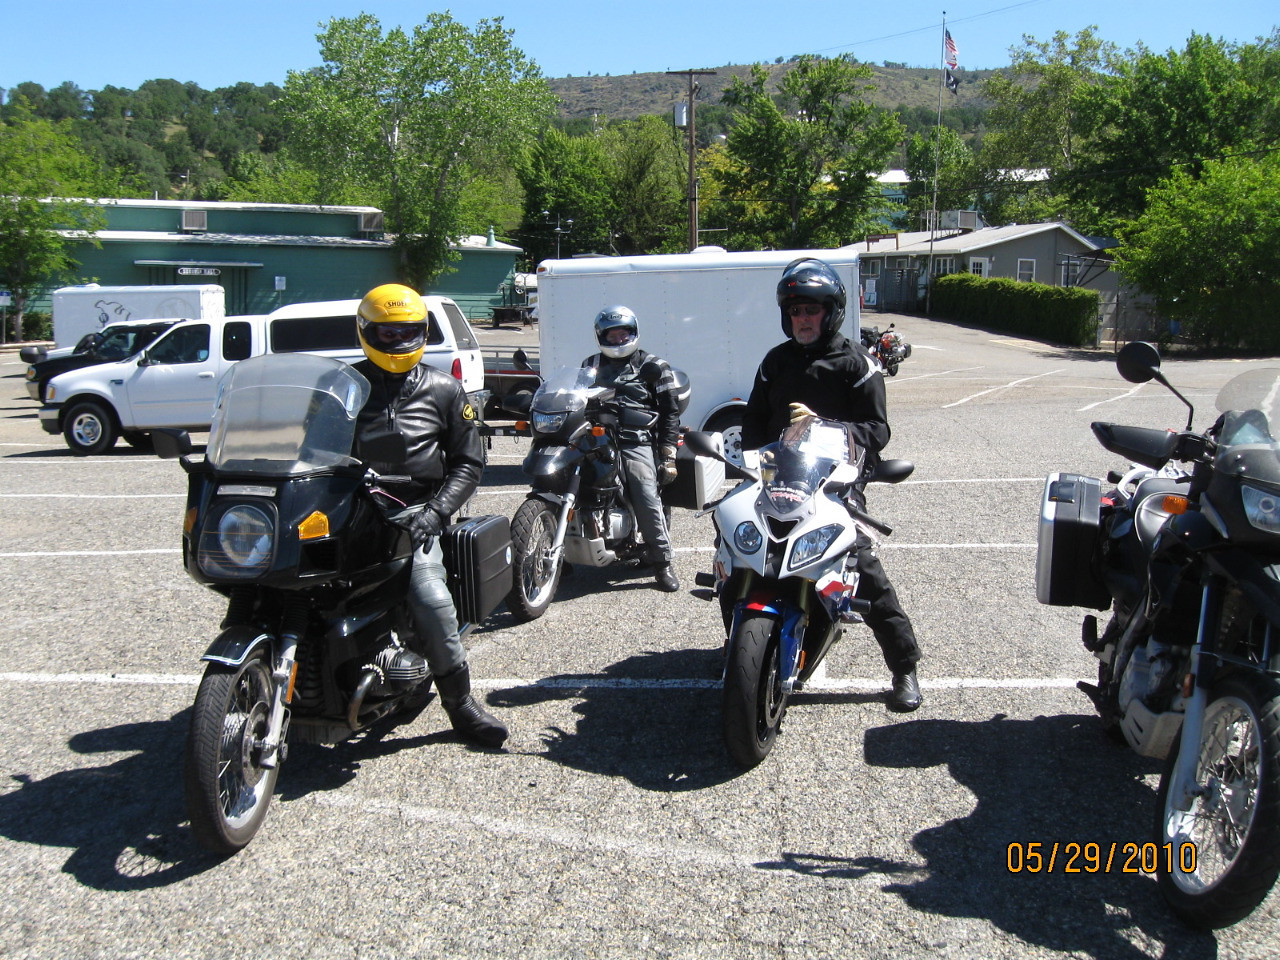 Nick K. Brown, Rick Klain, Chuck Brown wait for others joining the Poker Run ride.